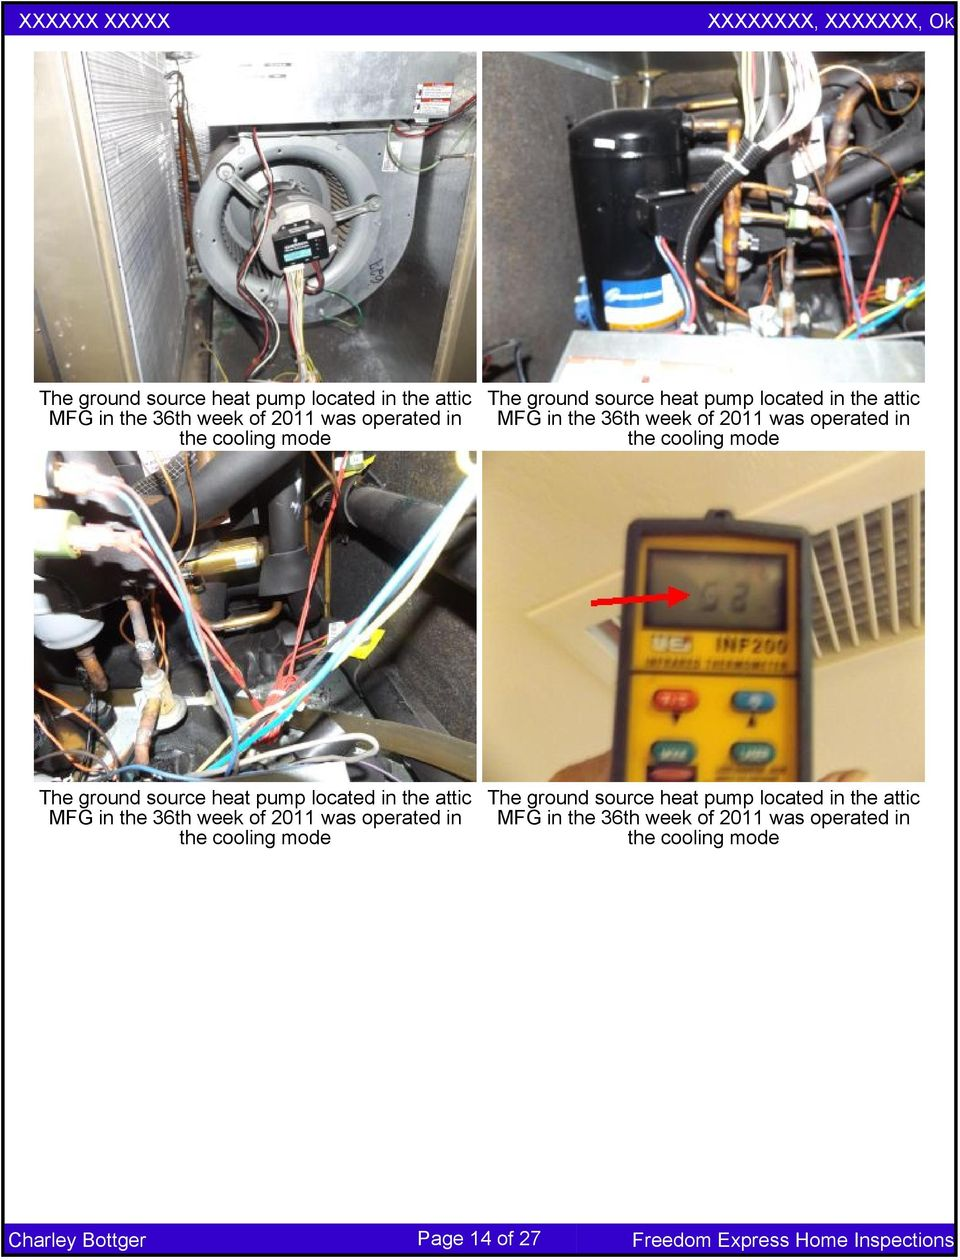 The ground source heat pump located in the attic MFG in the 36th week of 2011 was operated in the cooling  Page 14